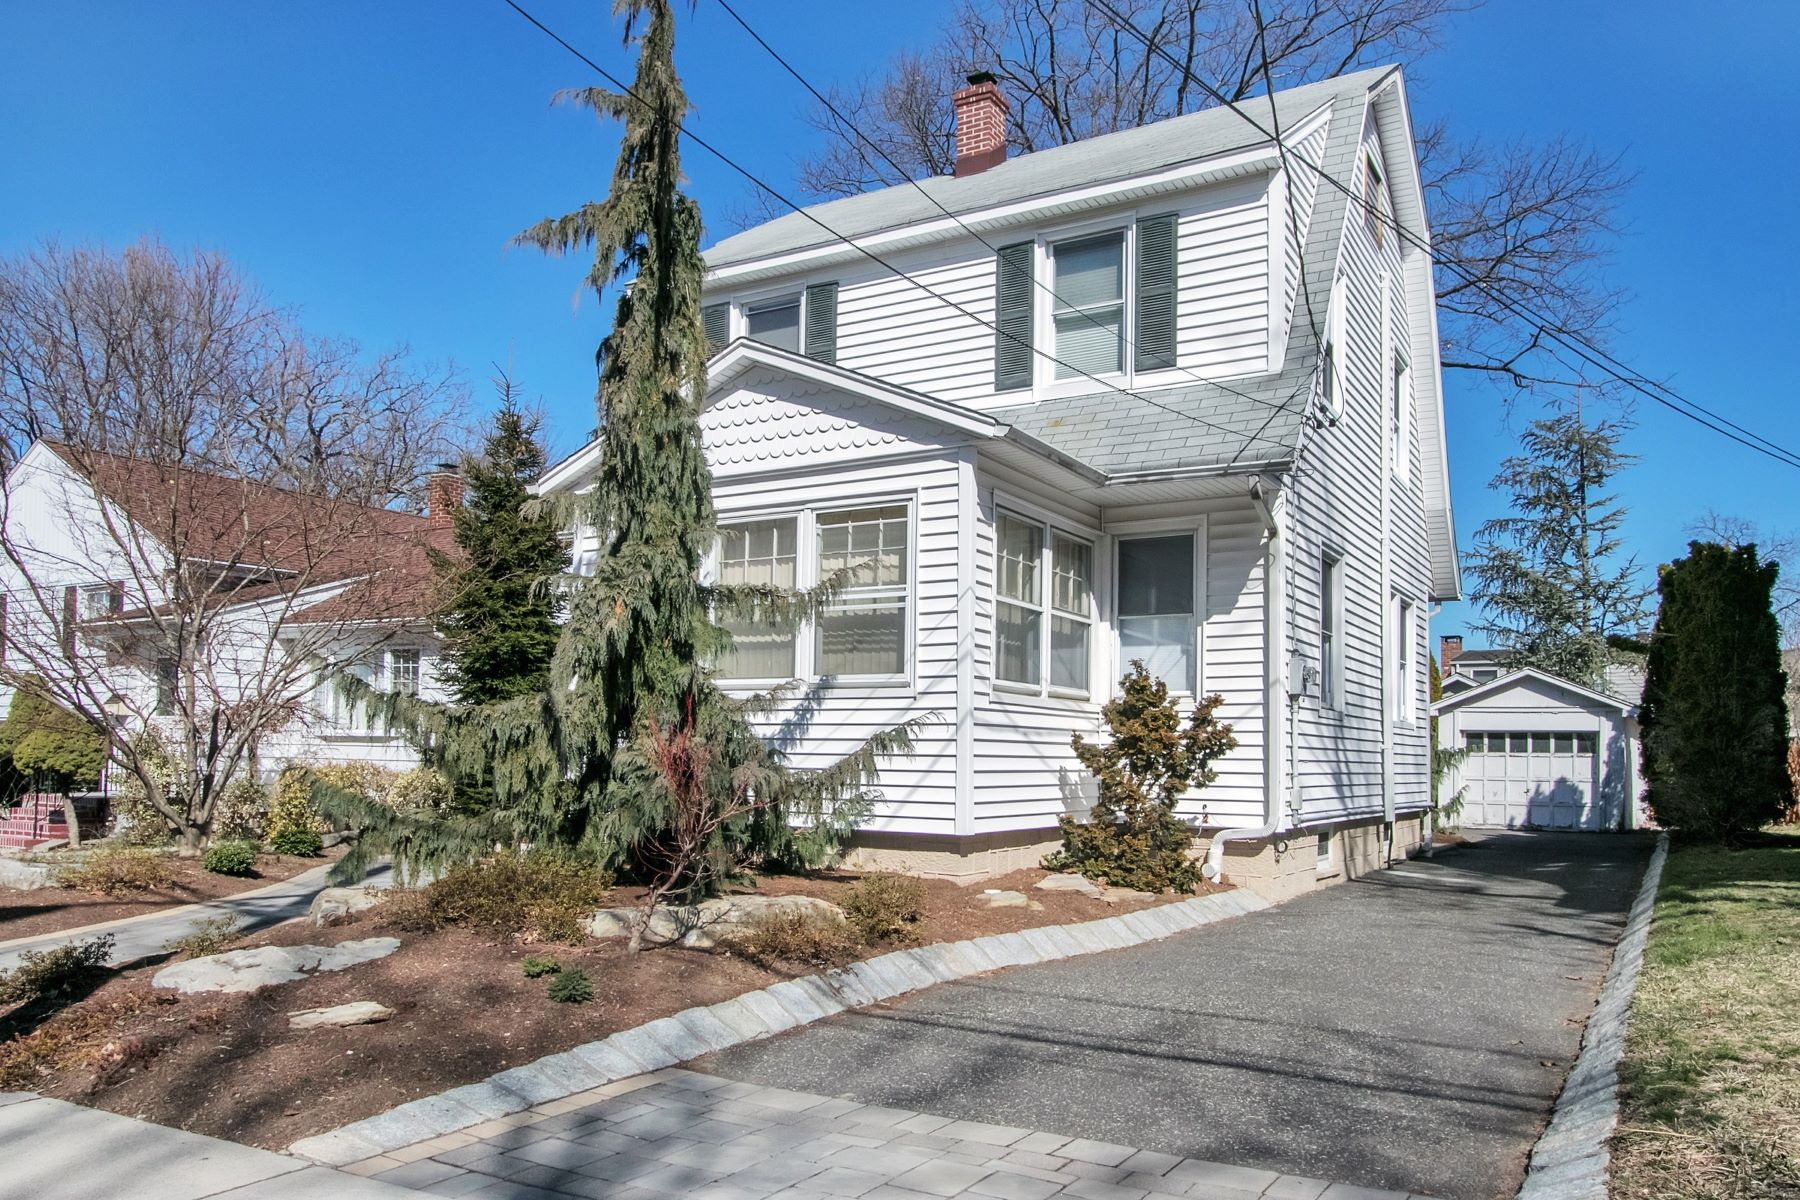 Single Family Home for Sale at Dumont Gem 56 W Linden Ave, Dumont, New Jersey 07626 United States